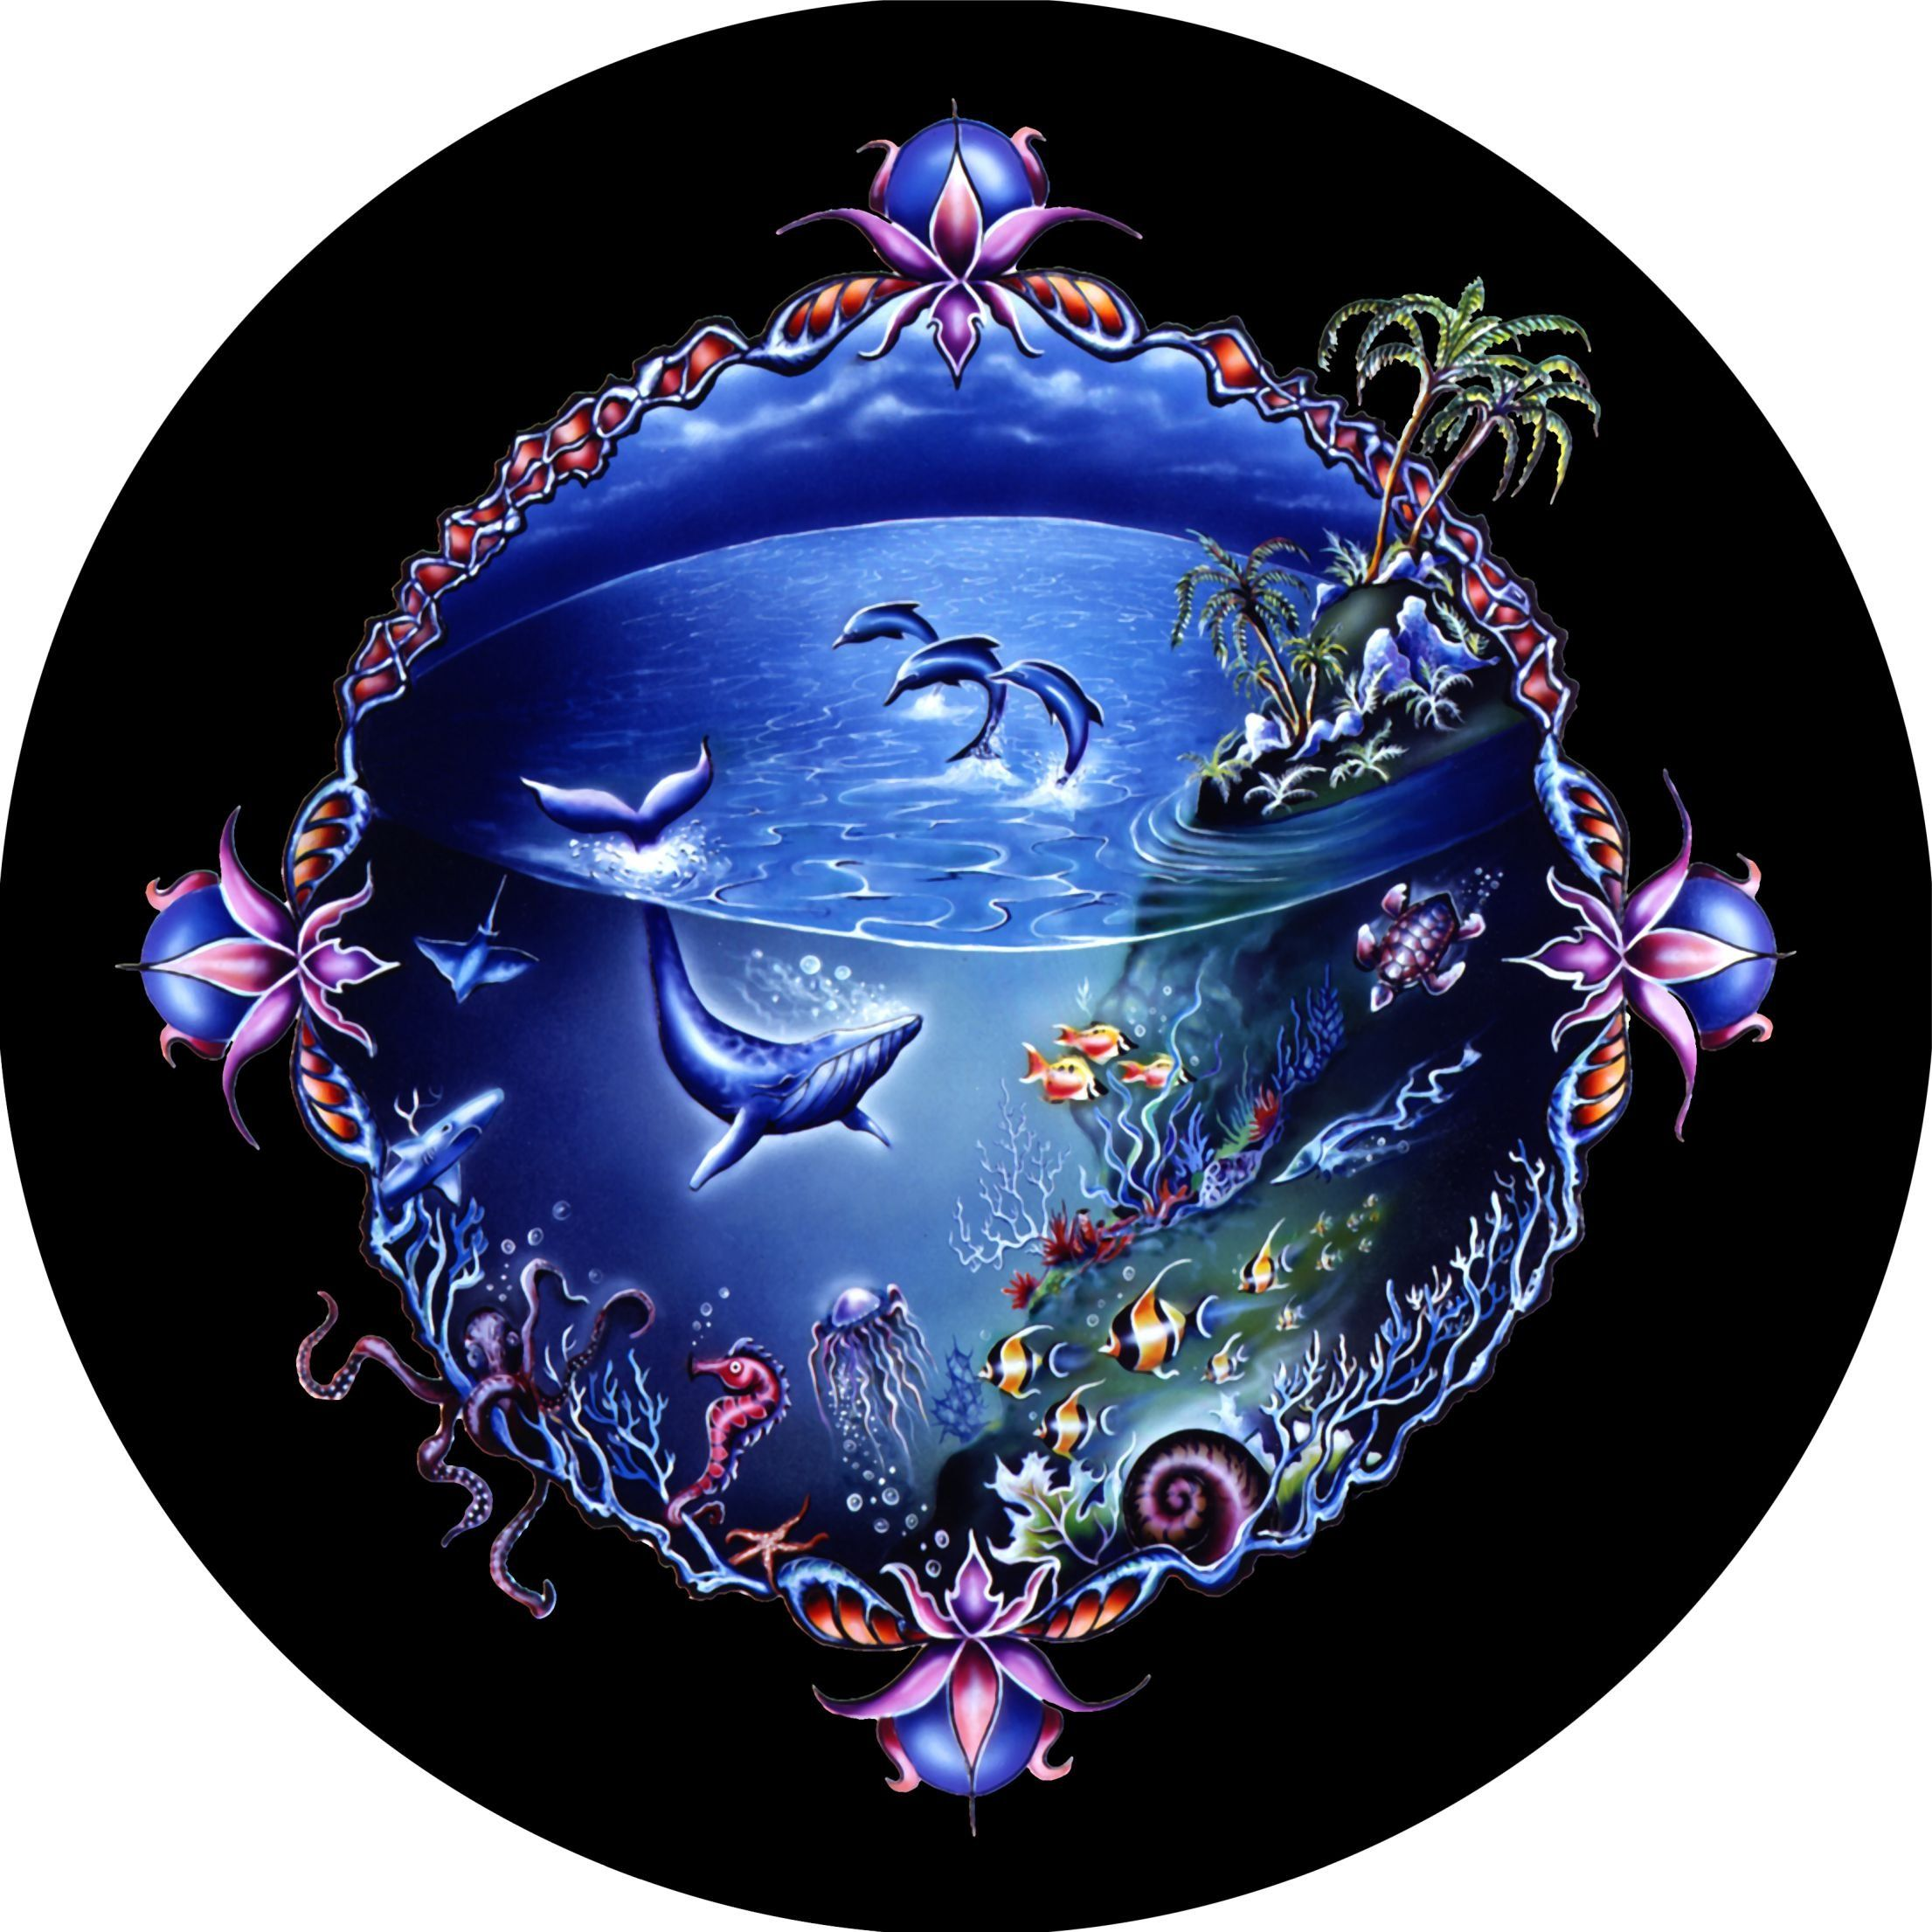 Undersea Whale Dolphin Hibiscus Border Spare Tire Cover For Jeep RV Camper VW Trailer Etc